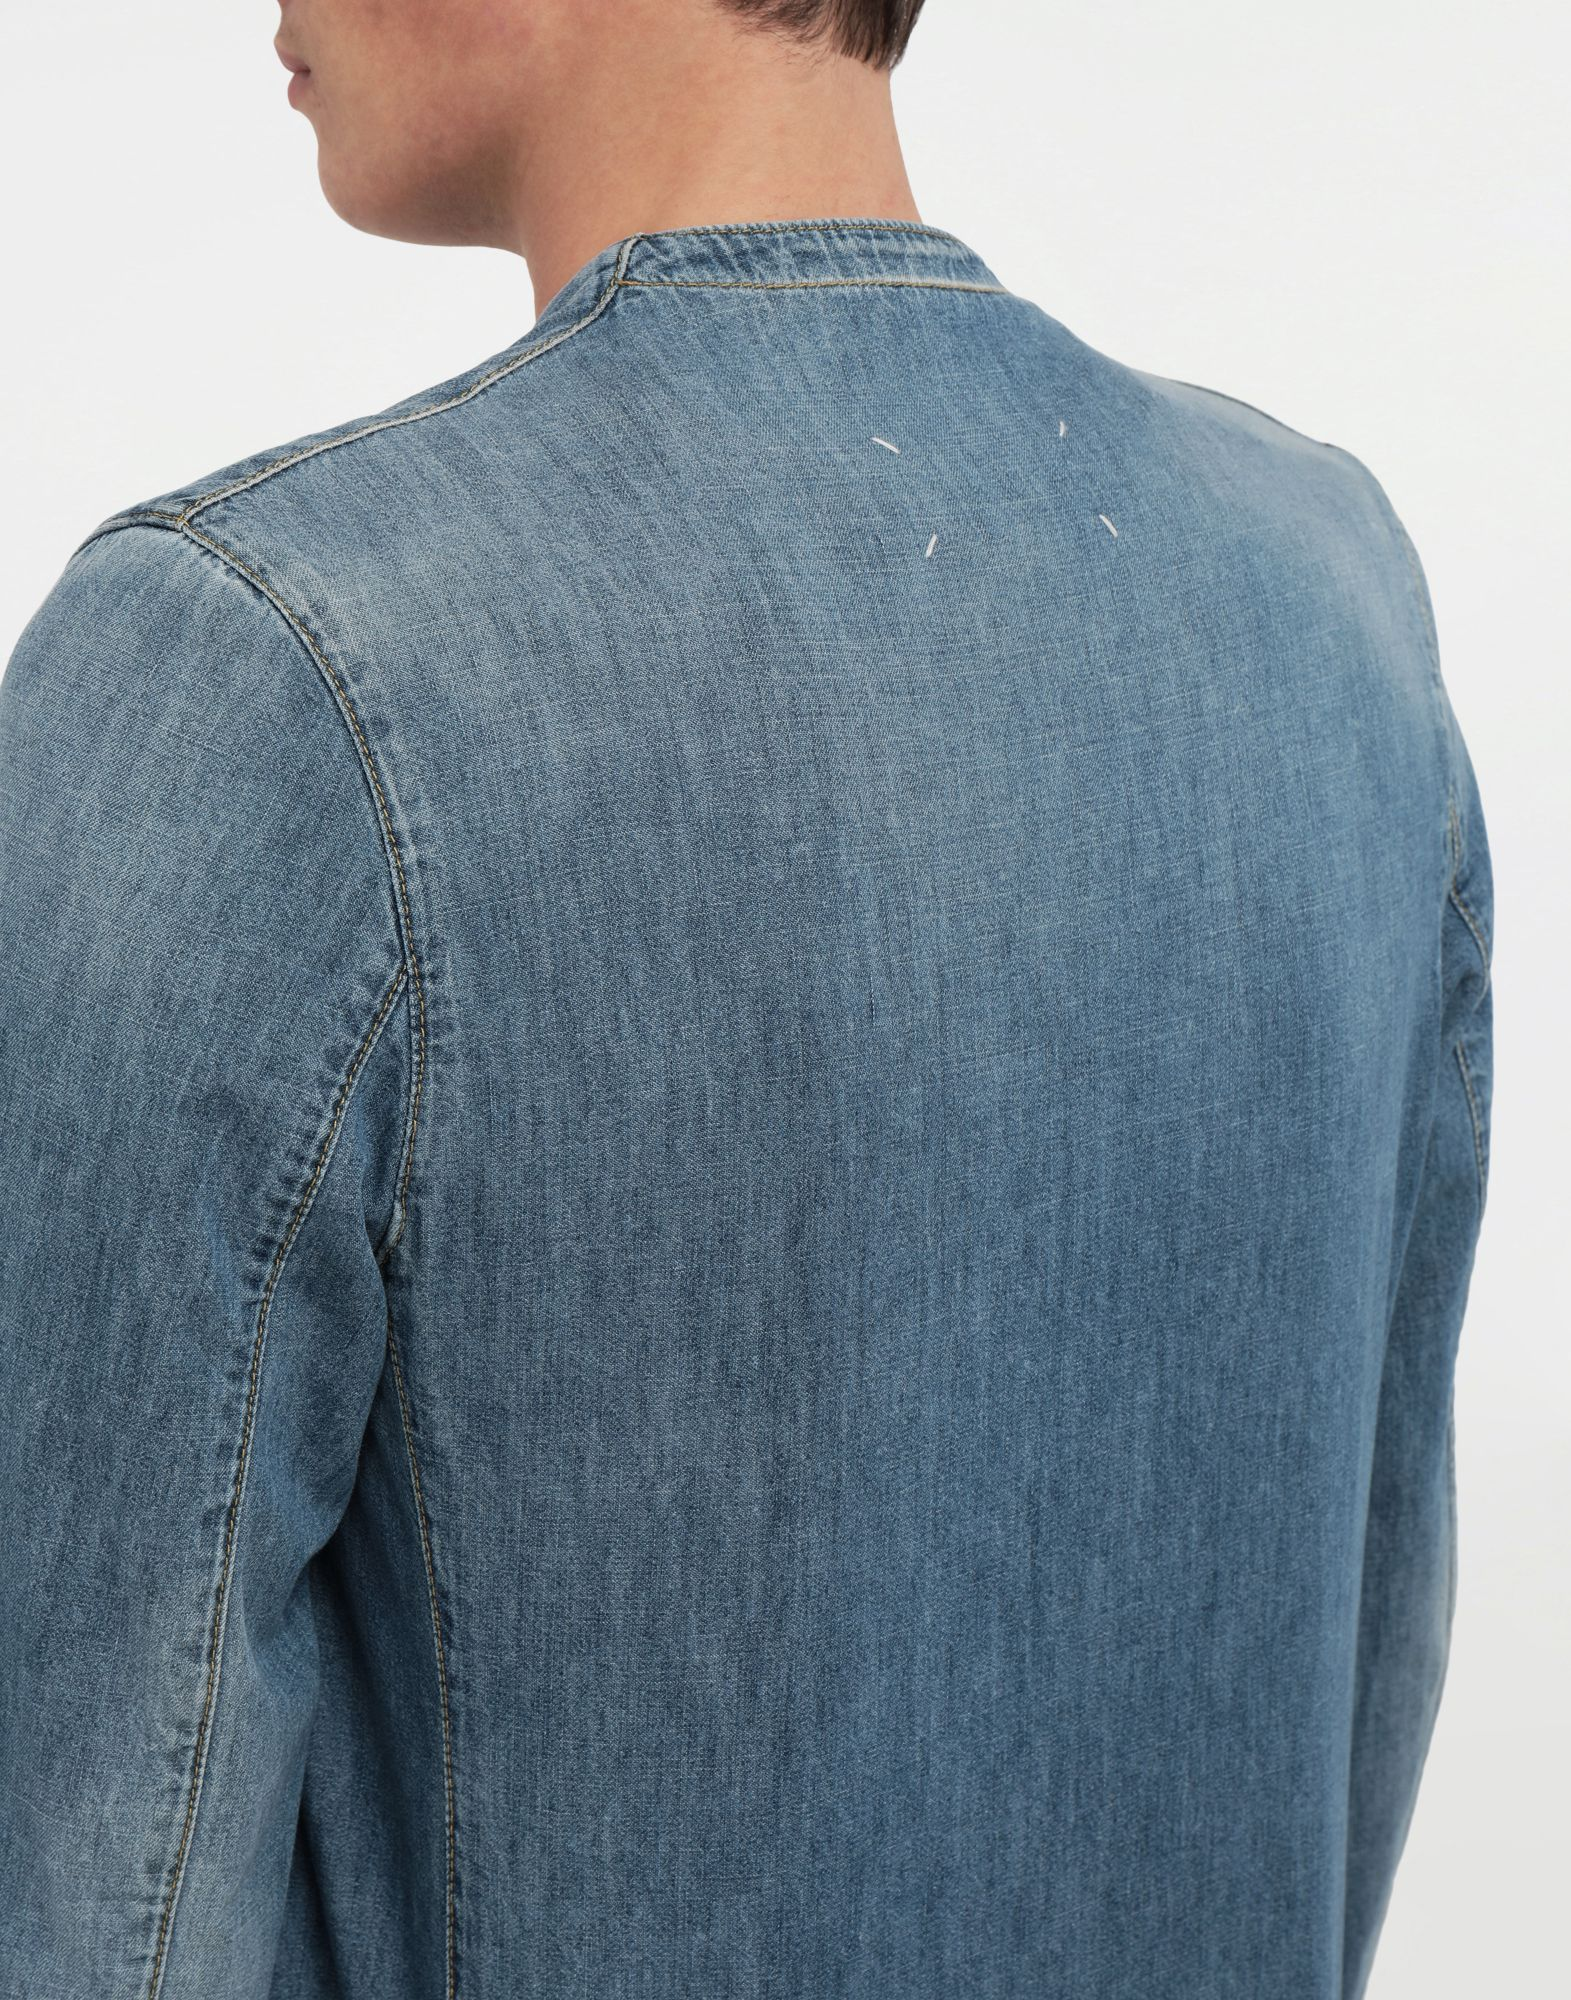 MAISON MARGIELA Collarless denim jacket Blazer Man b